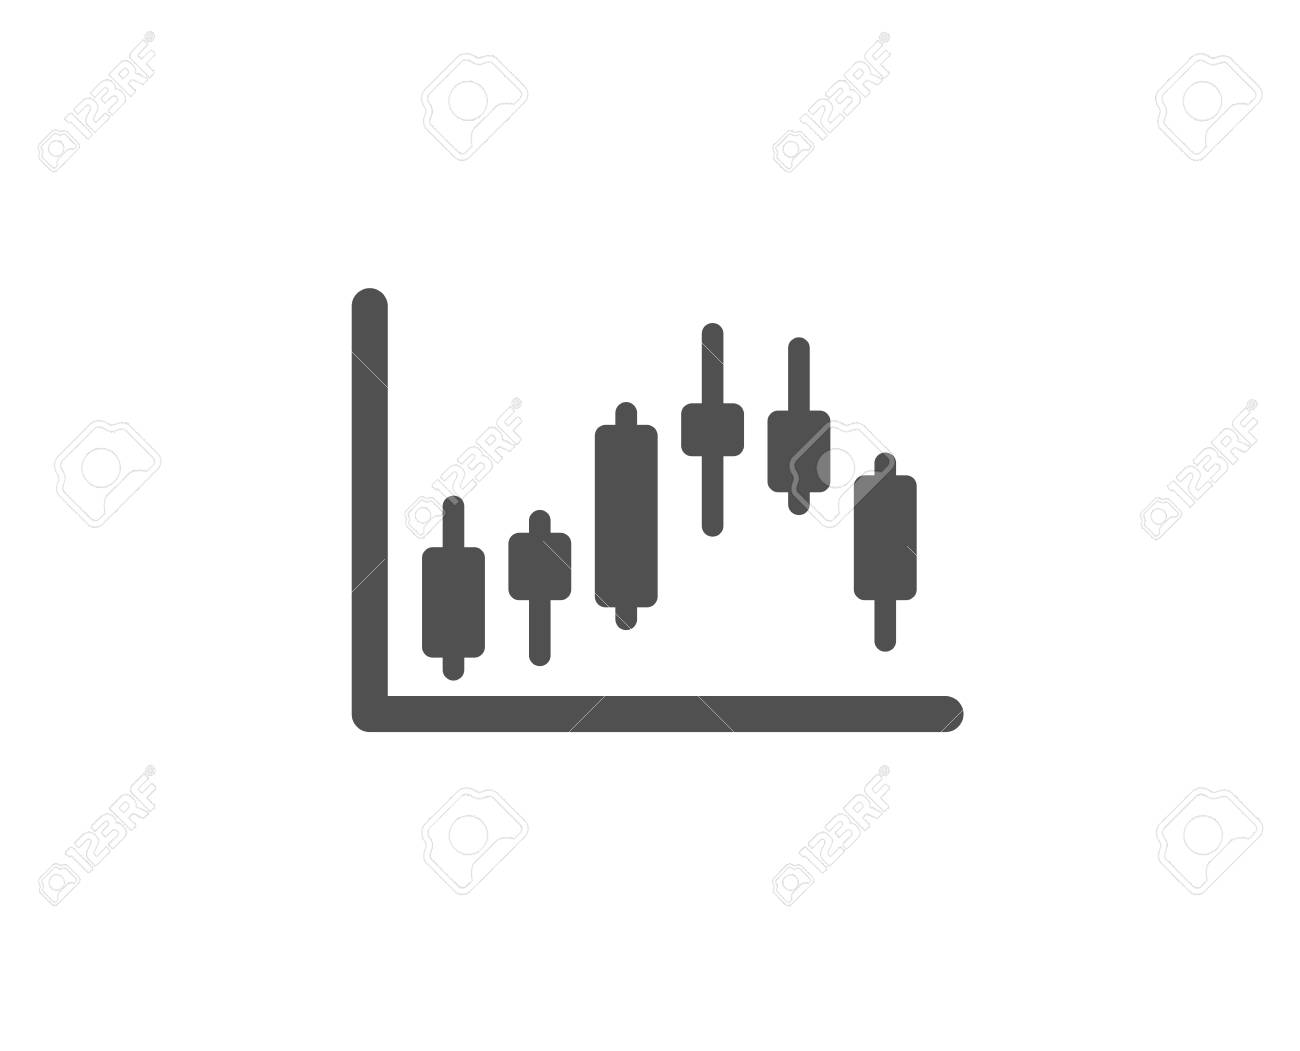 Candlestick Chart Simple Icon Financial Graph Sign Stock Exchange